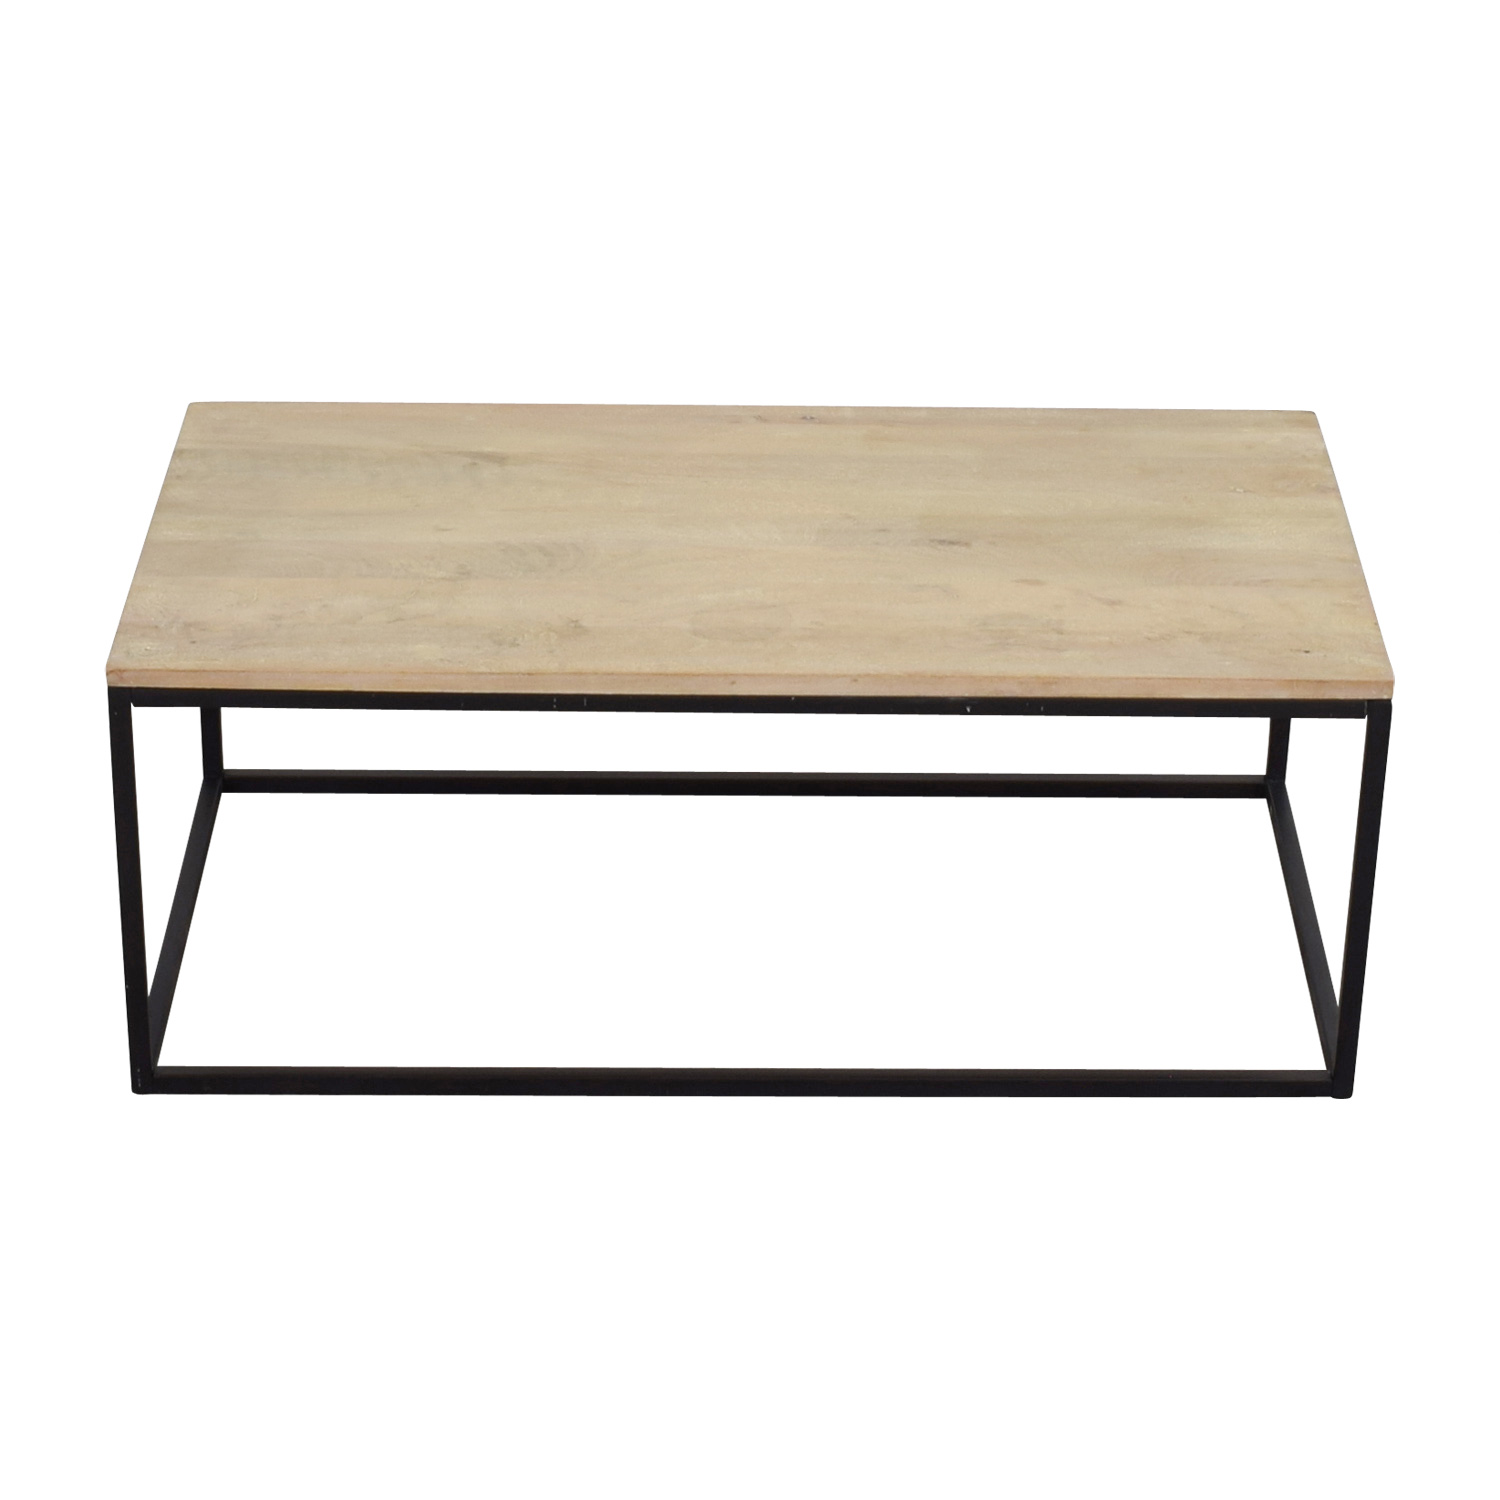 Crate & Barrel Natural Wood Coffee Table sale